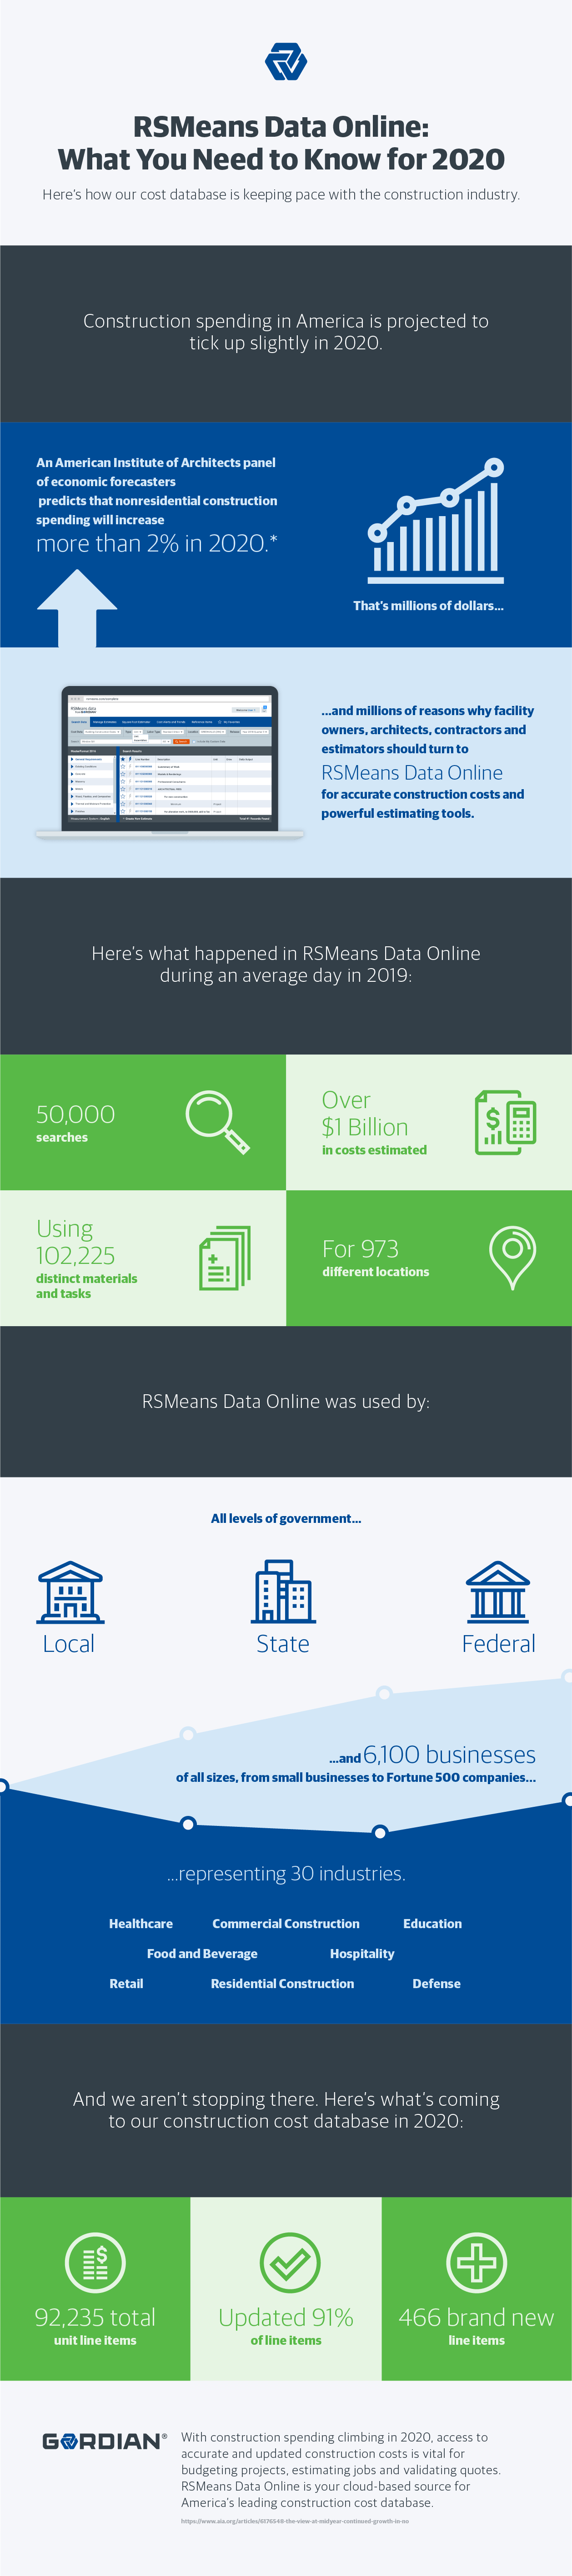 RSMeans Data Online: What You Need to Know for 2020 1